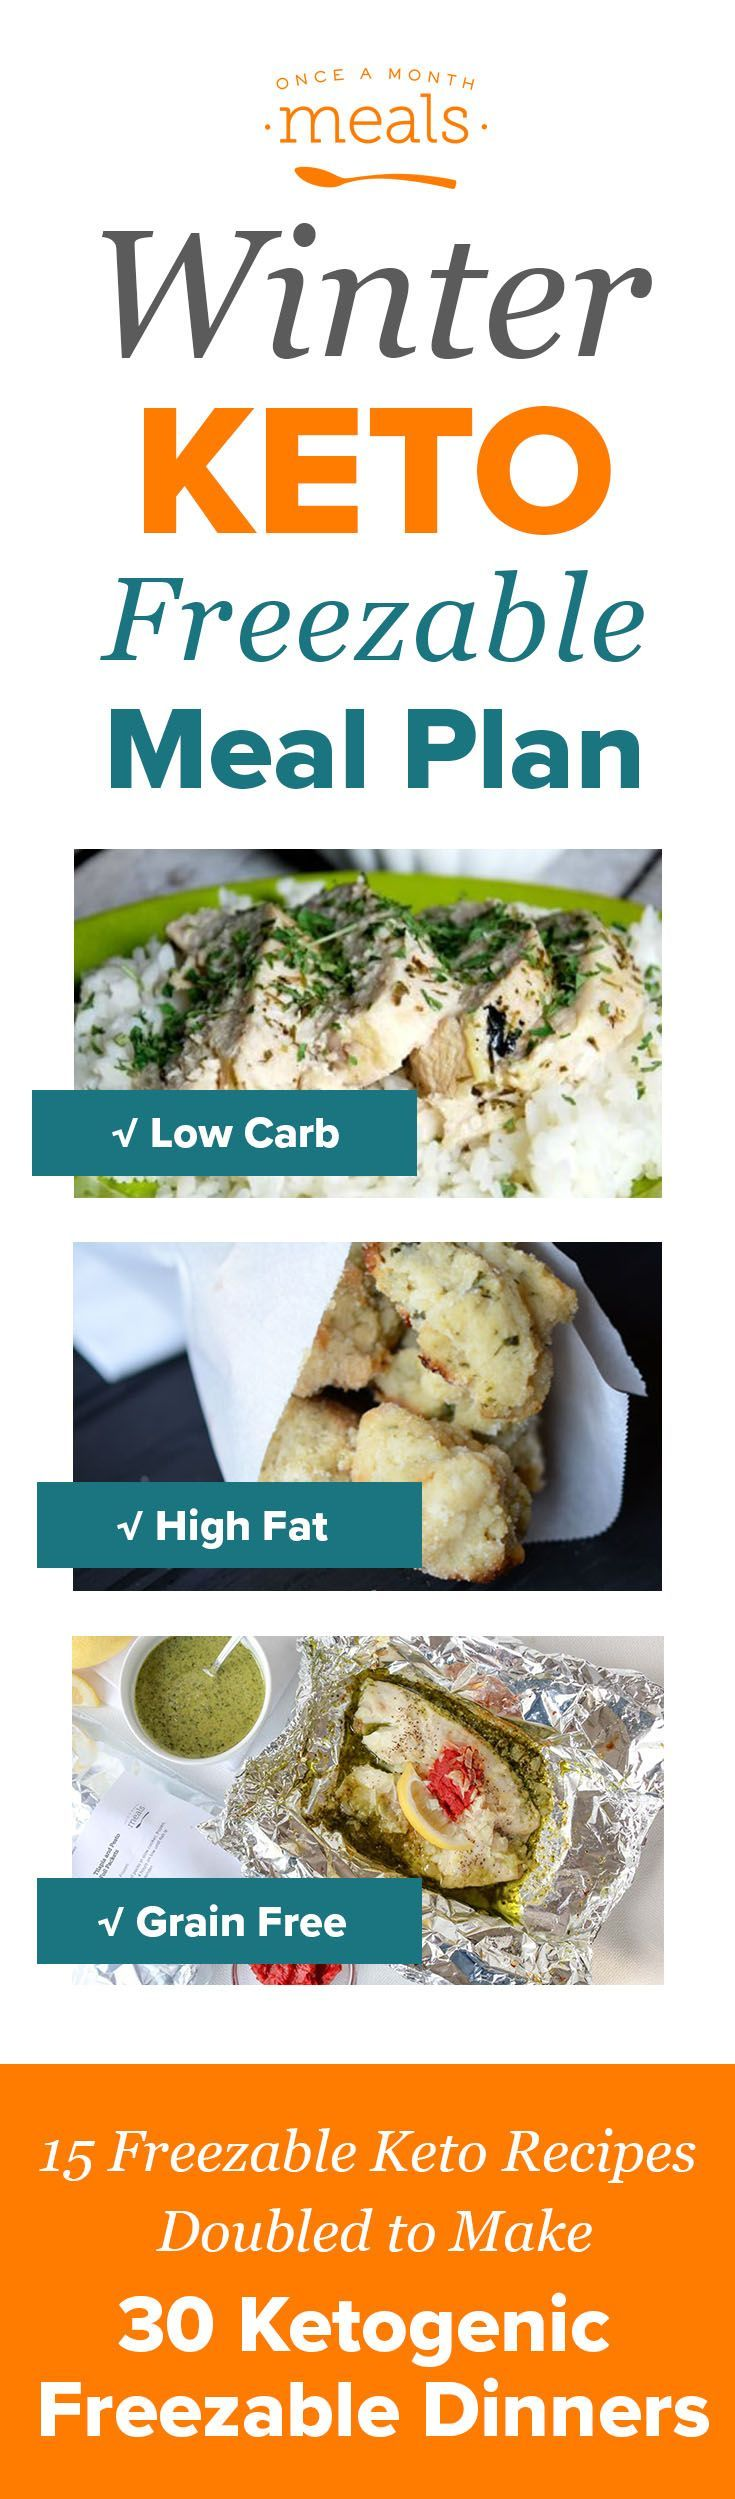 Start off your New Year right with these delicious and easy keto friendly freezer meals. 15 recipes make 30 meals to keep on hand! #Keto #KetoDiet #KetoRecipes #Recipes #LowCarb